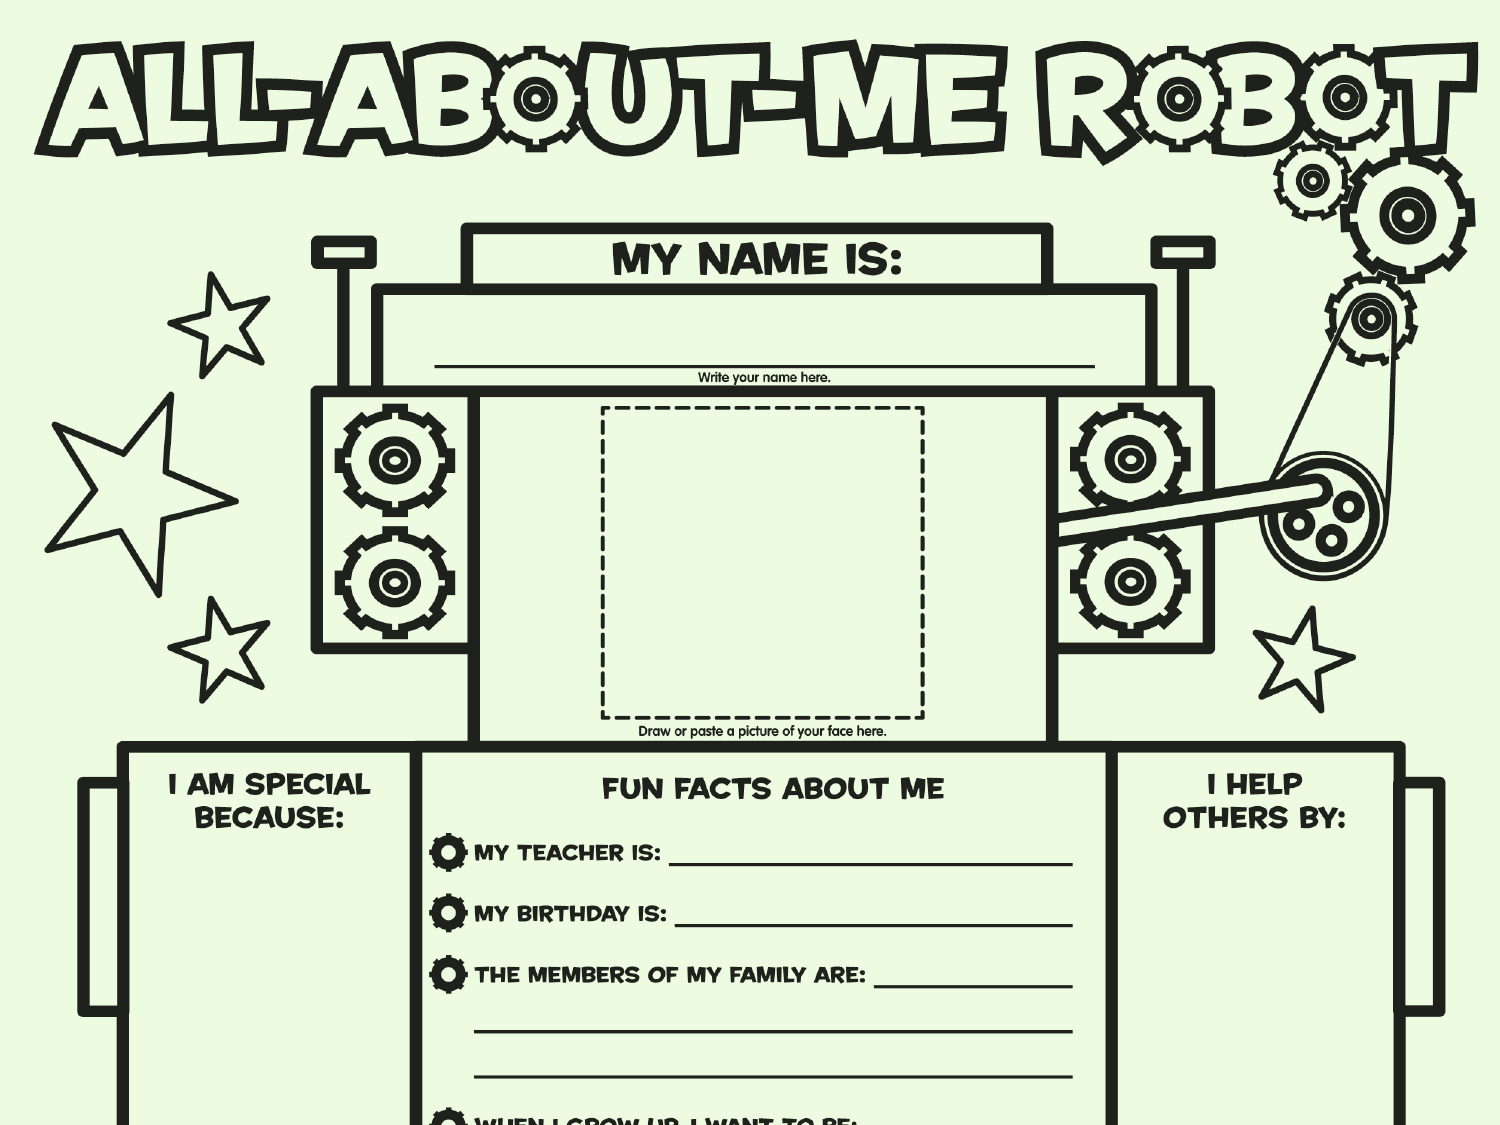 All About Me Robot Fill In Poster